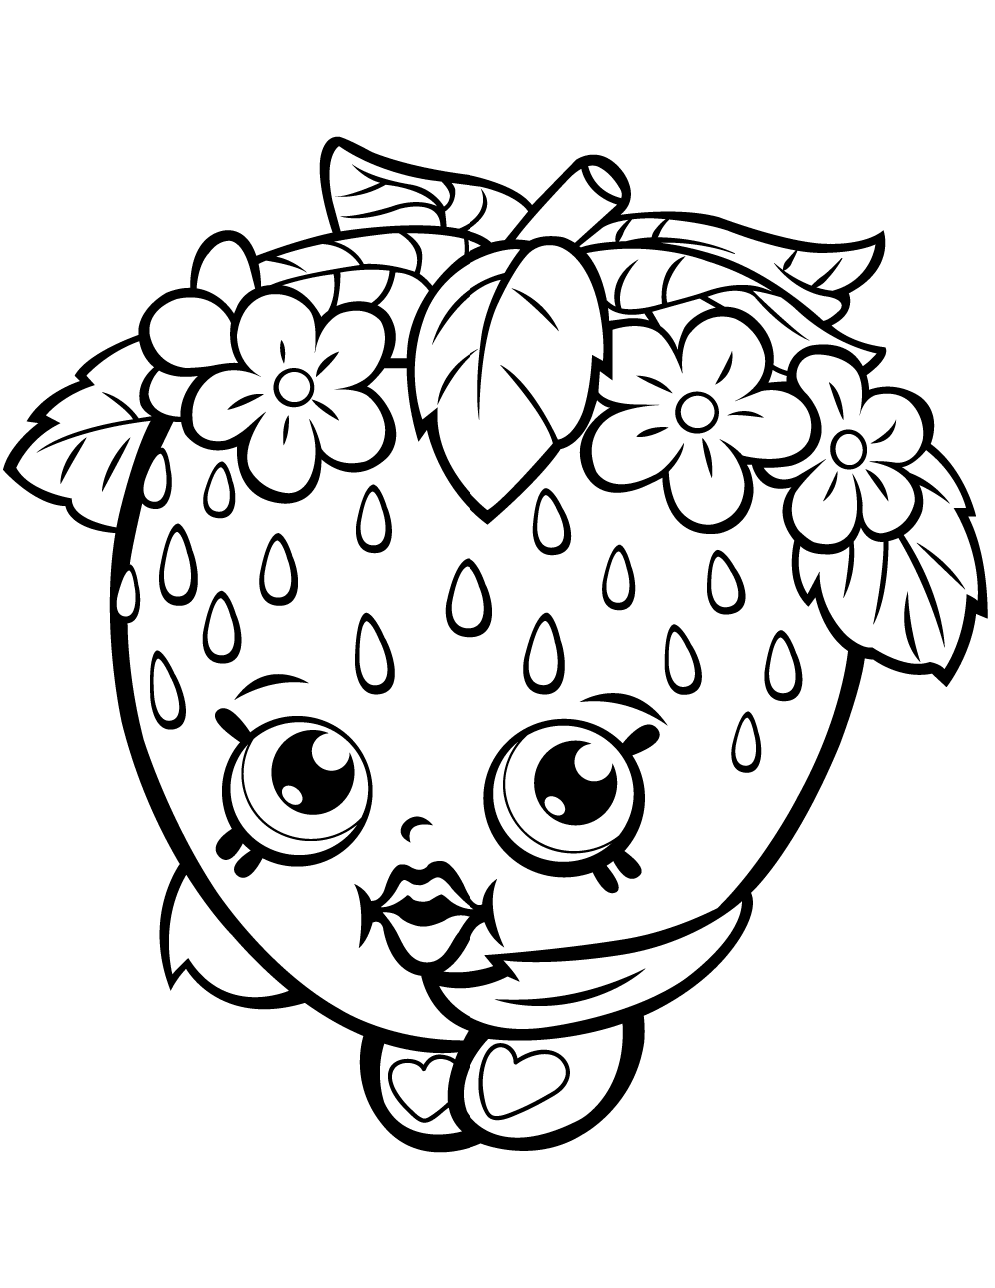 Toni Topper Shopkins Coloring Page Free Coloring Pages Online Shopkins Coloring Pages Free Printable Shopkins Colouring Pages Shopkin Coloring Pages